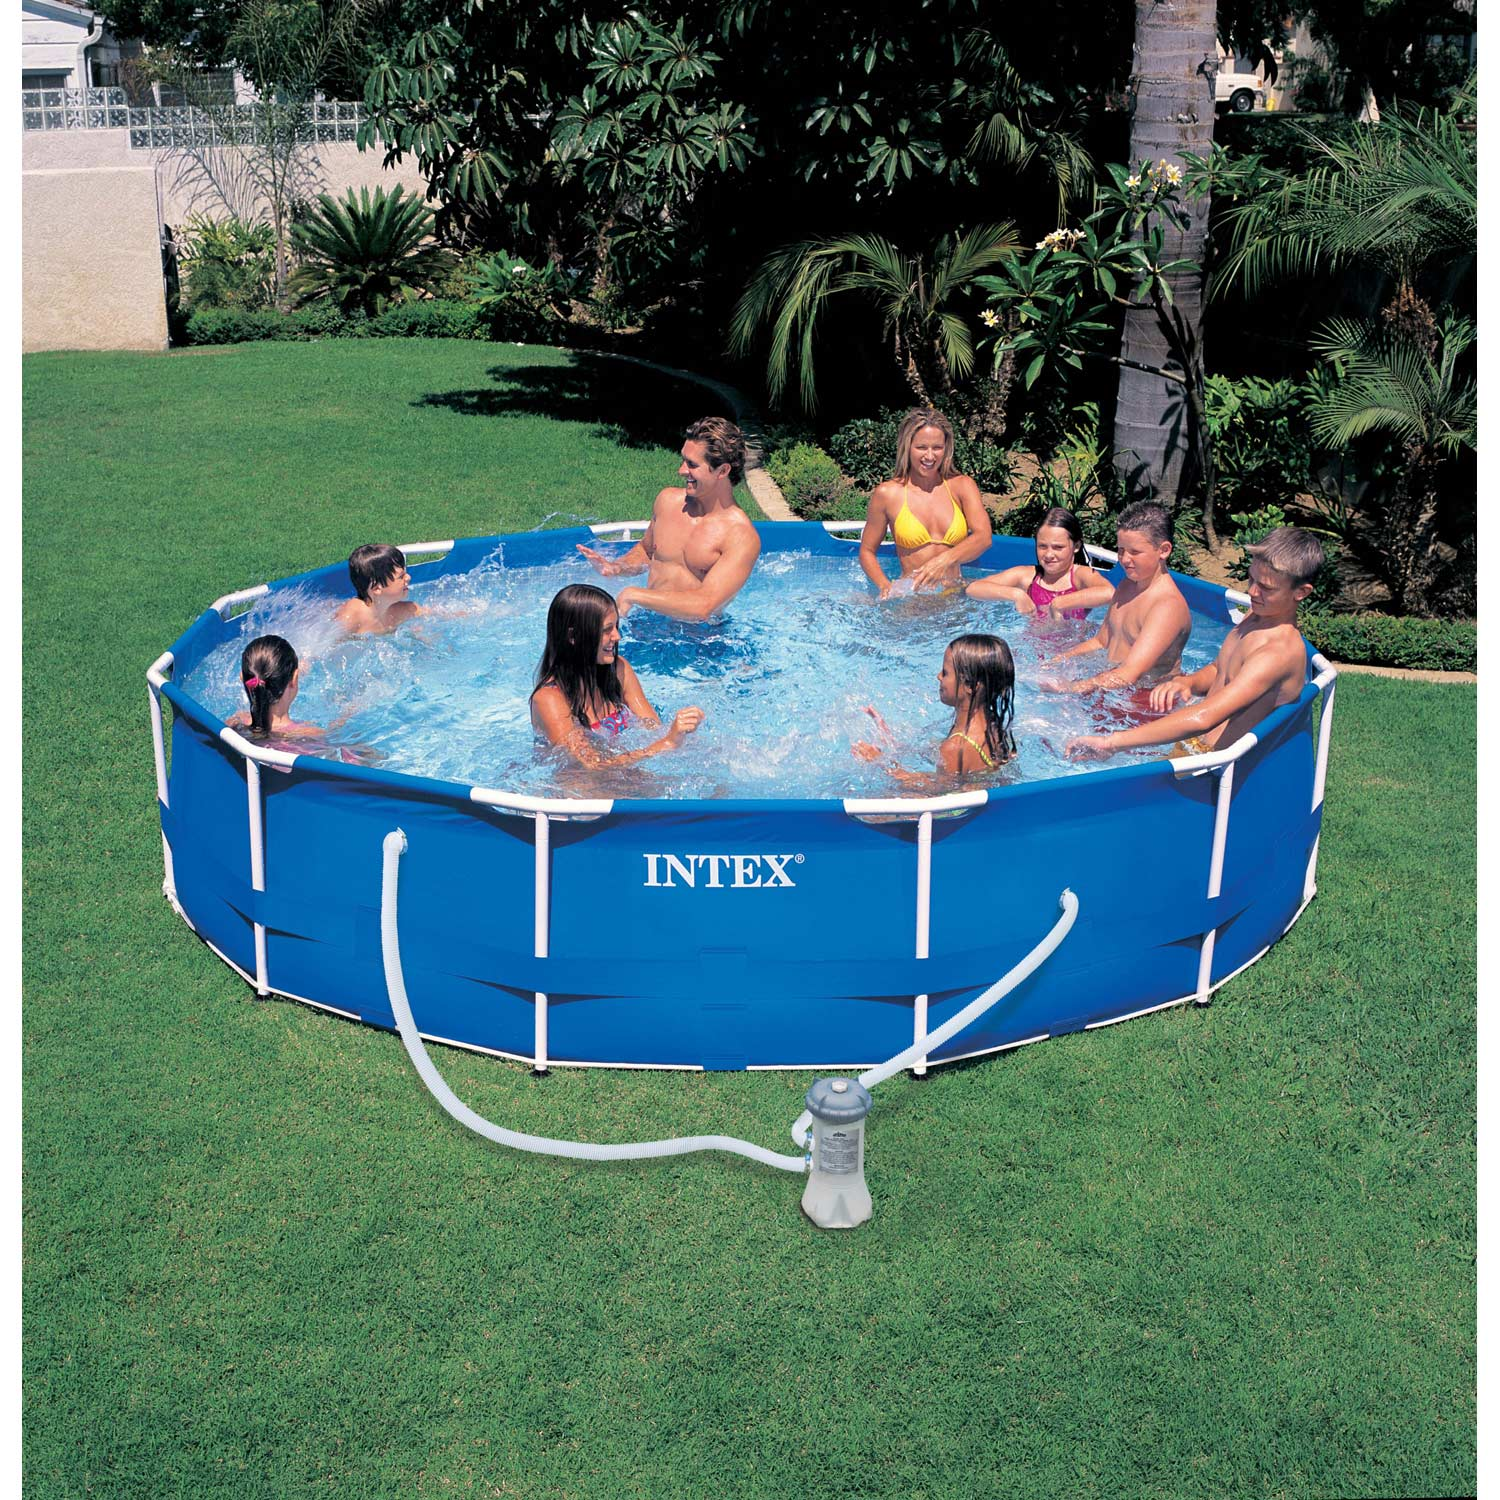 Piscine hors sol autoportante tubulaire metal frame intex for Piscine hors sol 10x5m